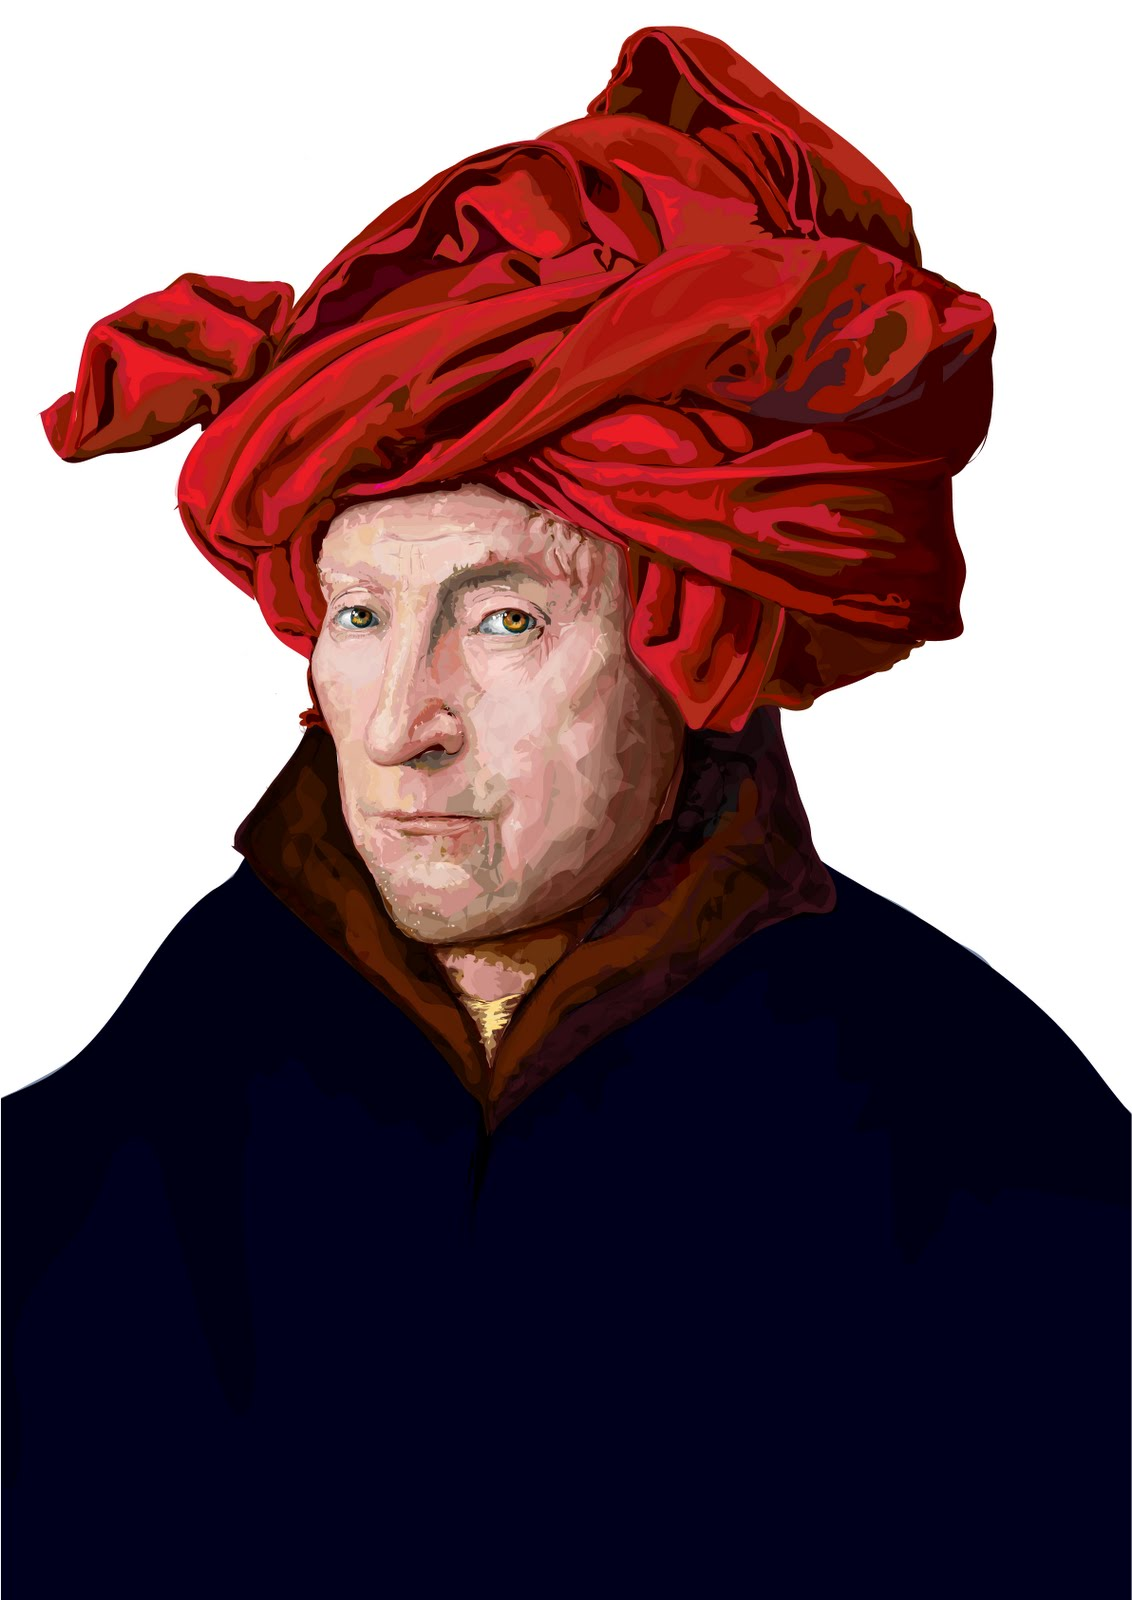 an analysis of jan van eycks man in a red turban essay Largest educational library crowd sourced by students, teachers and educationalists across the country to provide free education to students of india and the world.